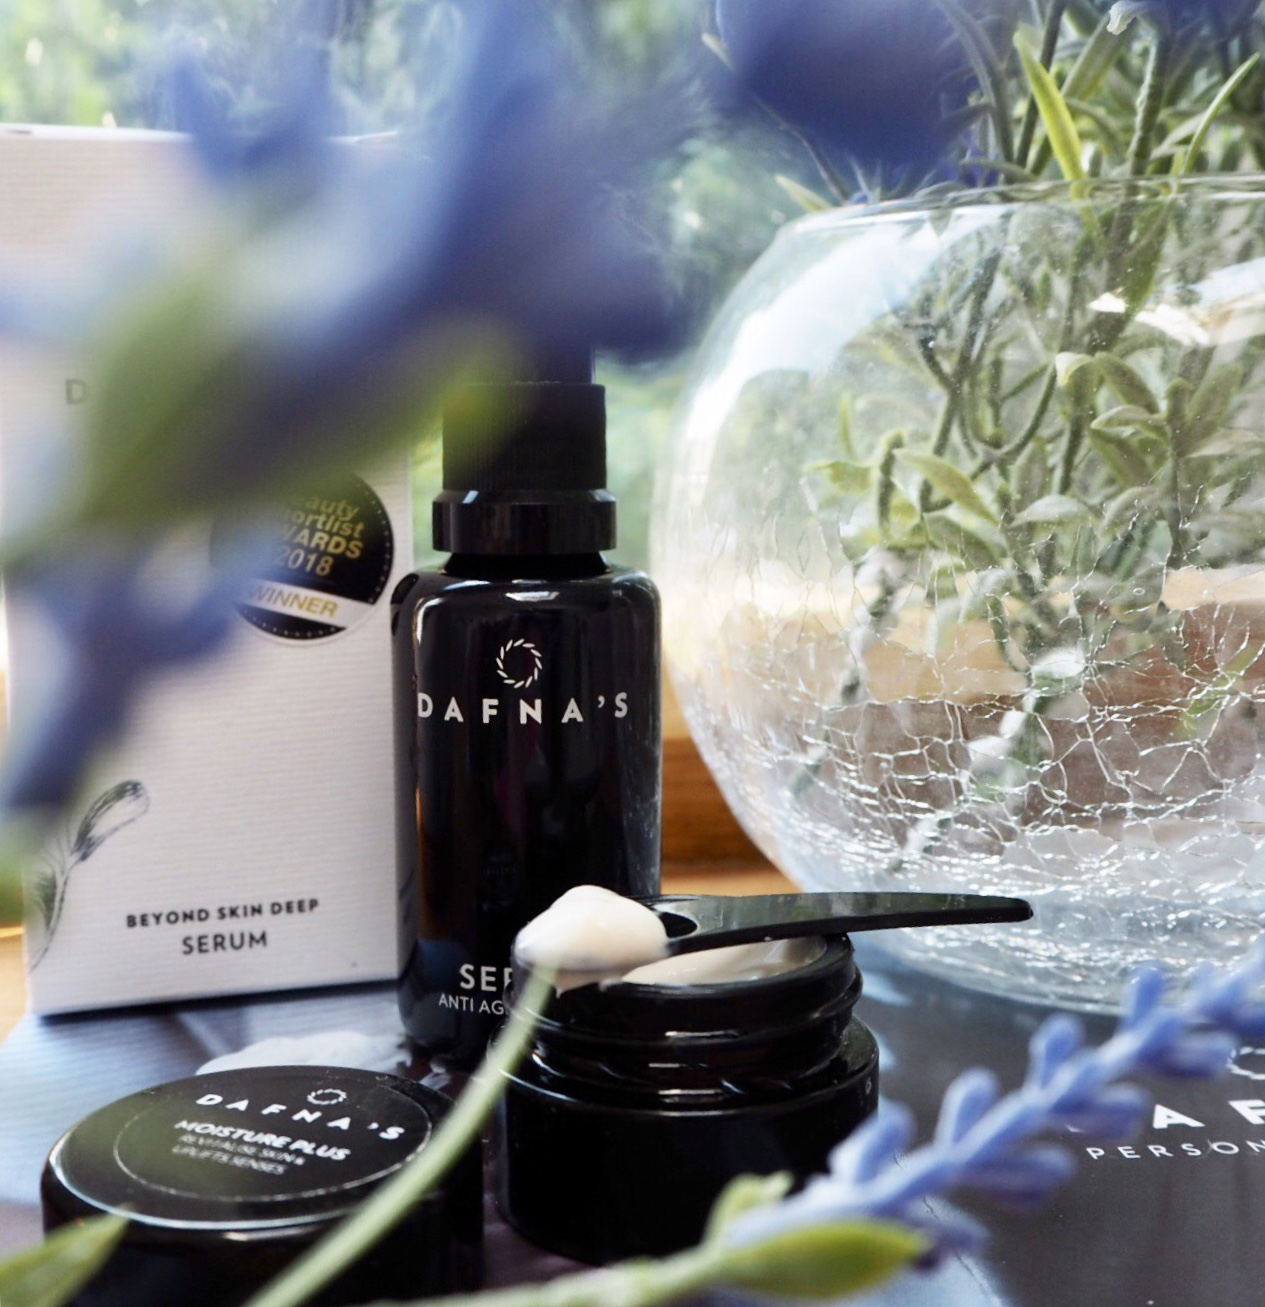 Dafna's personal skincare. serum and glow